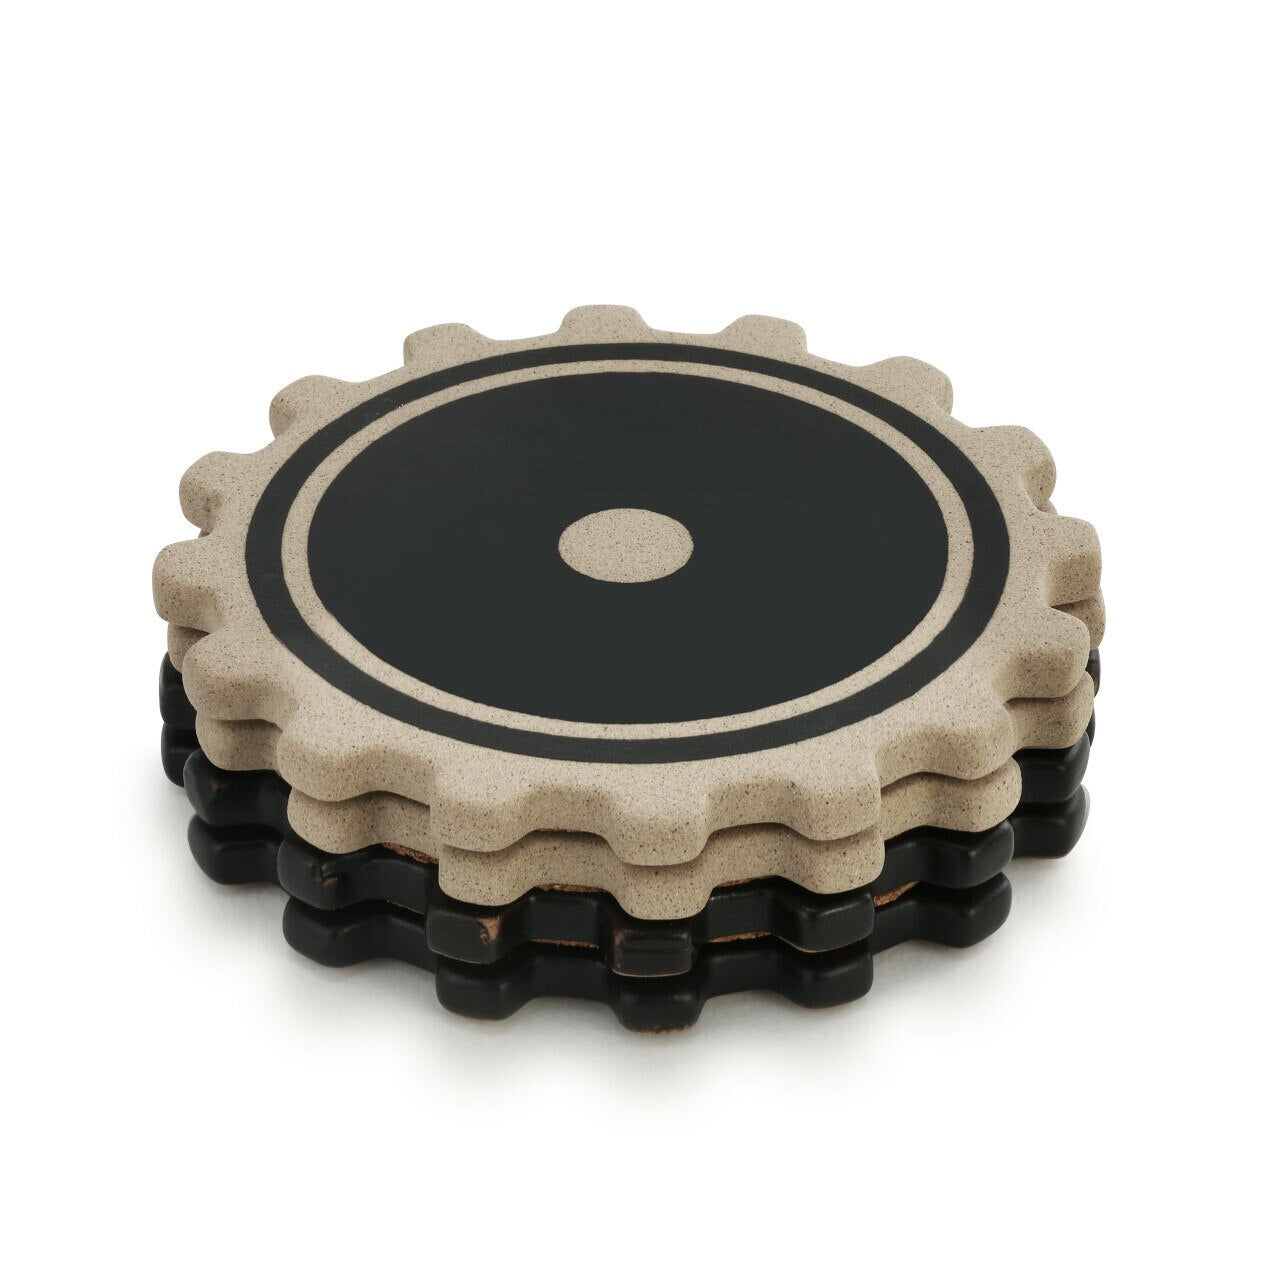 Gear Coasters - Set of 4